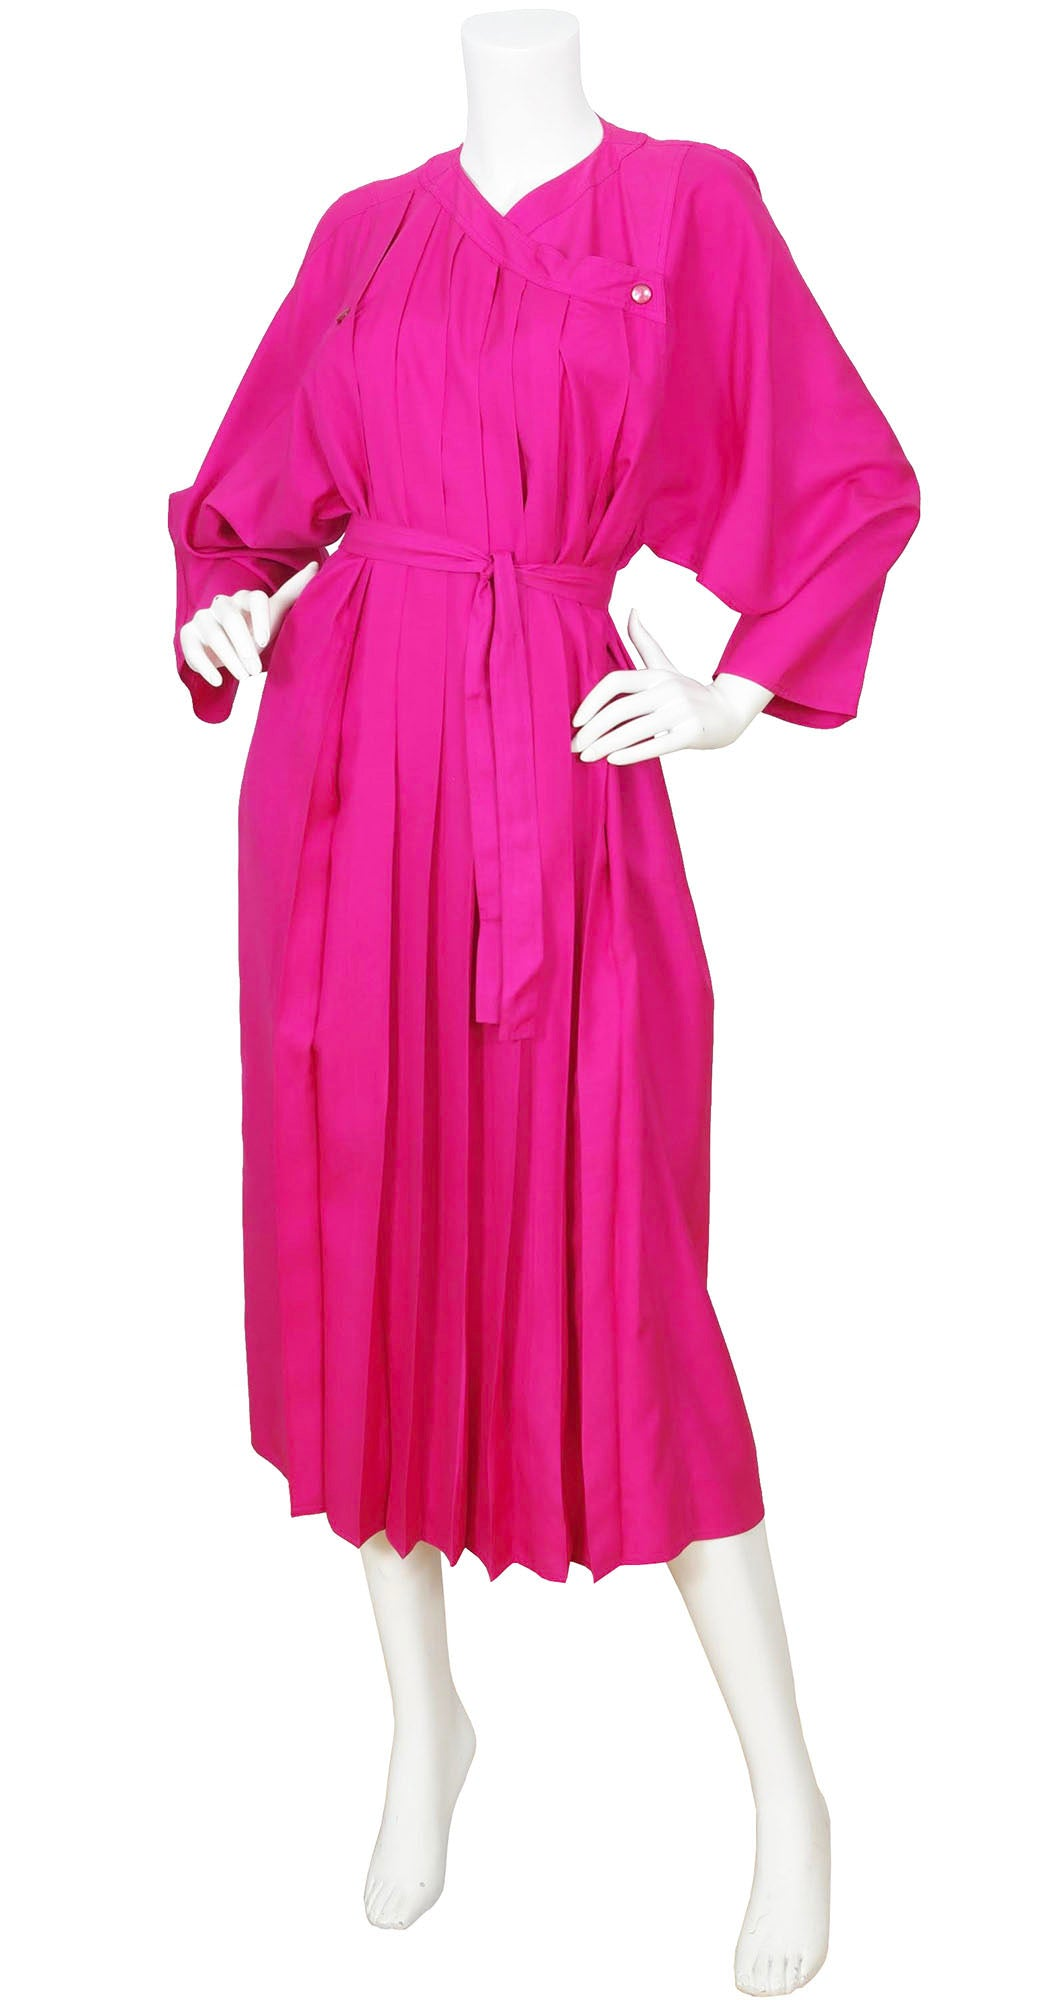 1980s Pleated Hot Pink Raw Silk Dress